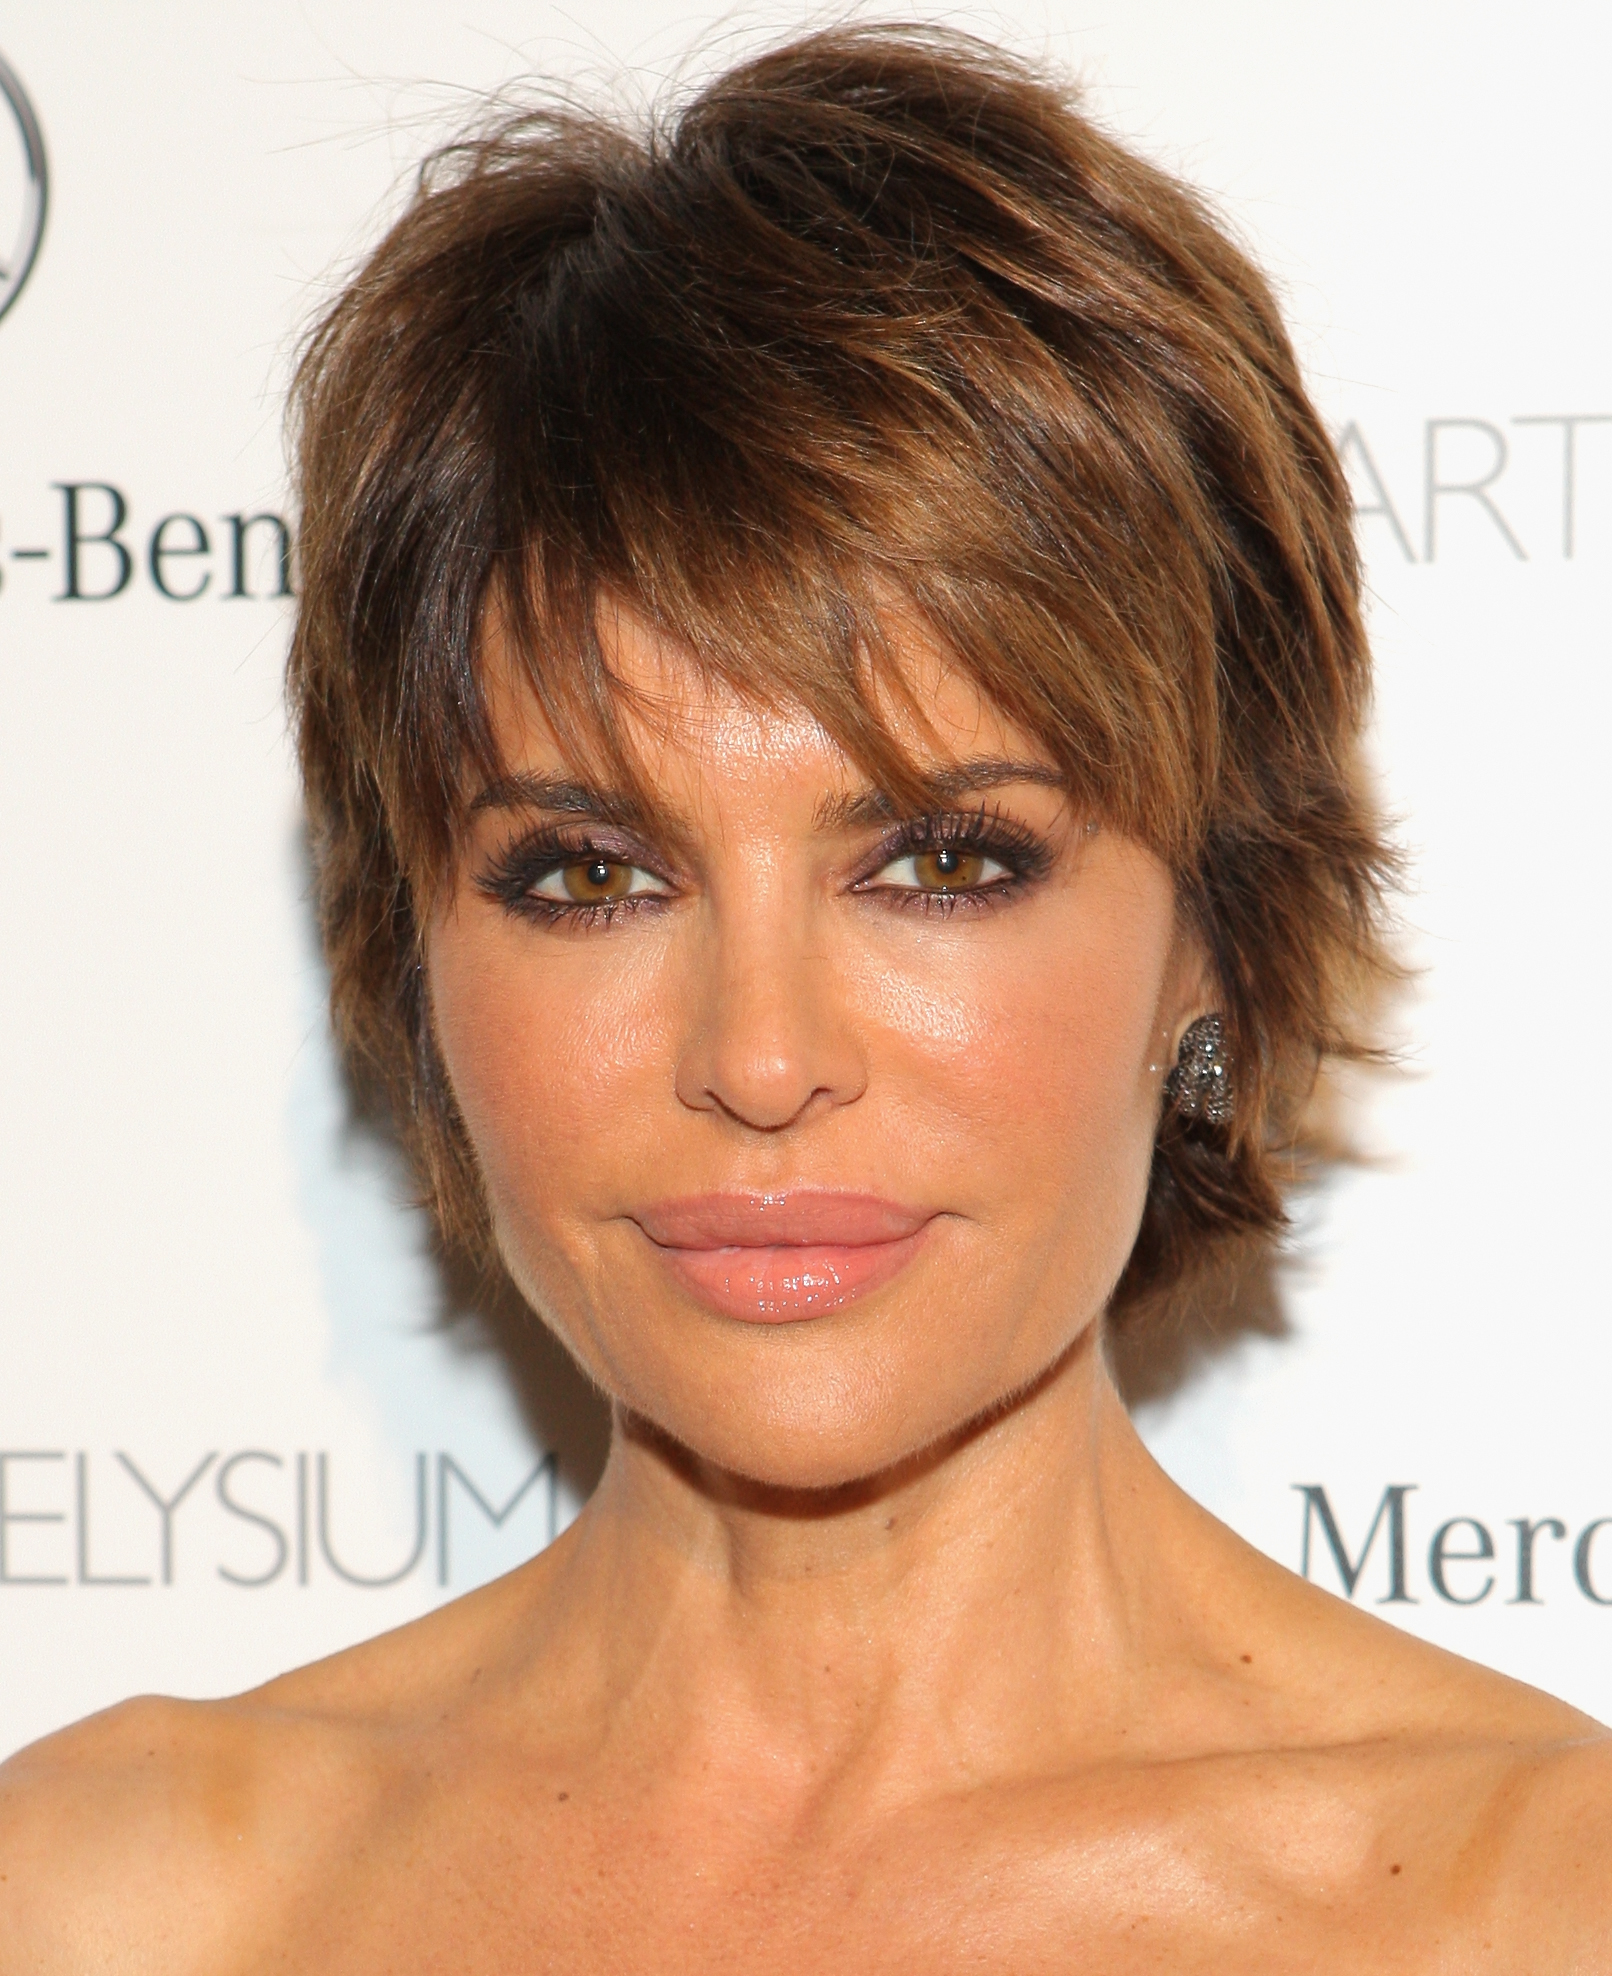 Lisa Rinna nude (81 photos) Selfie, Facebook, lingerie